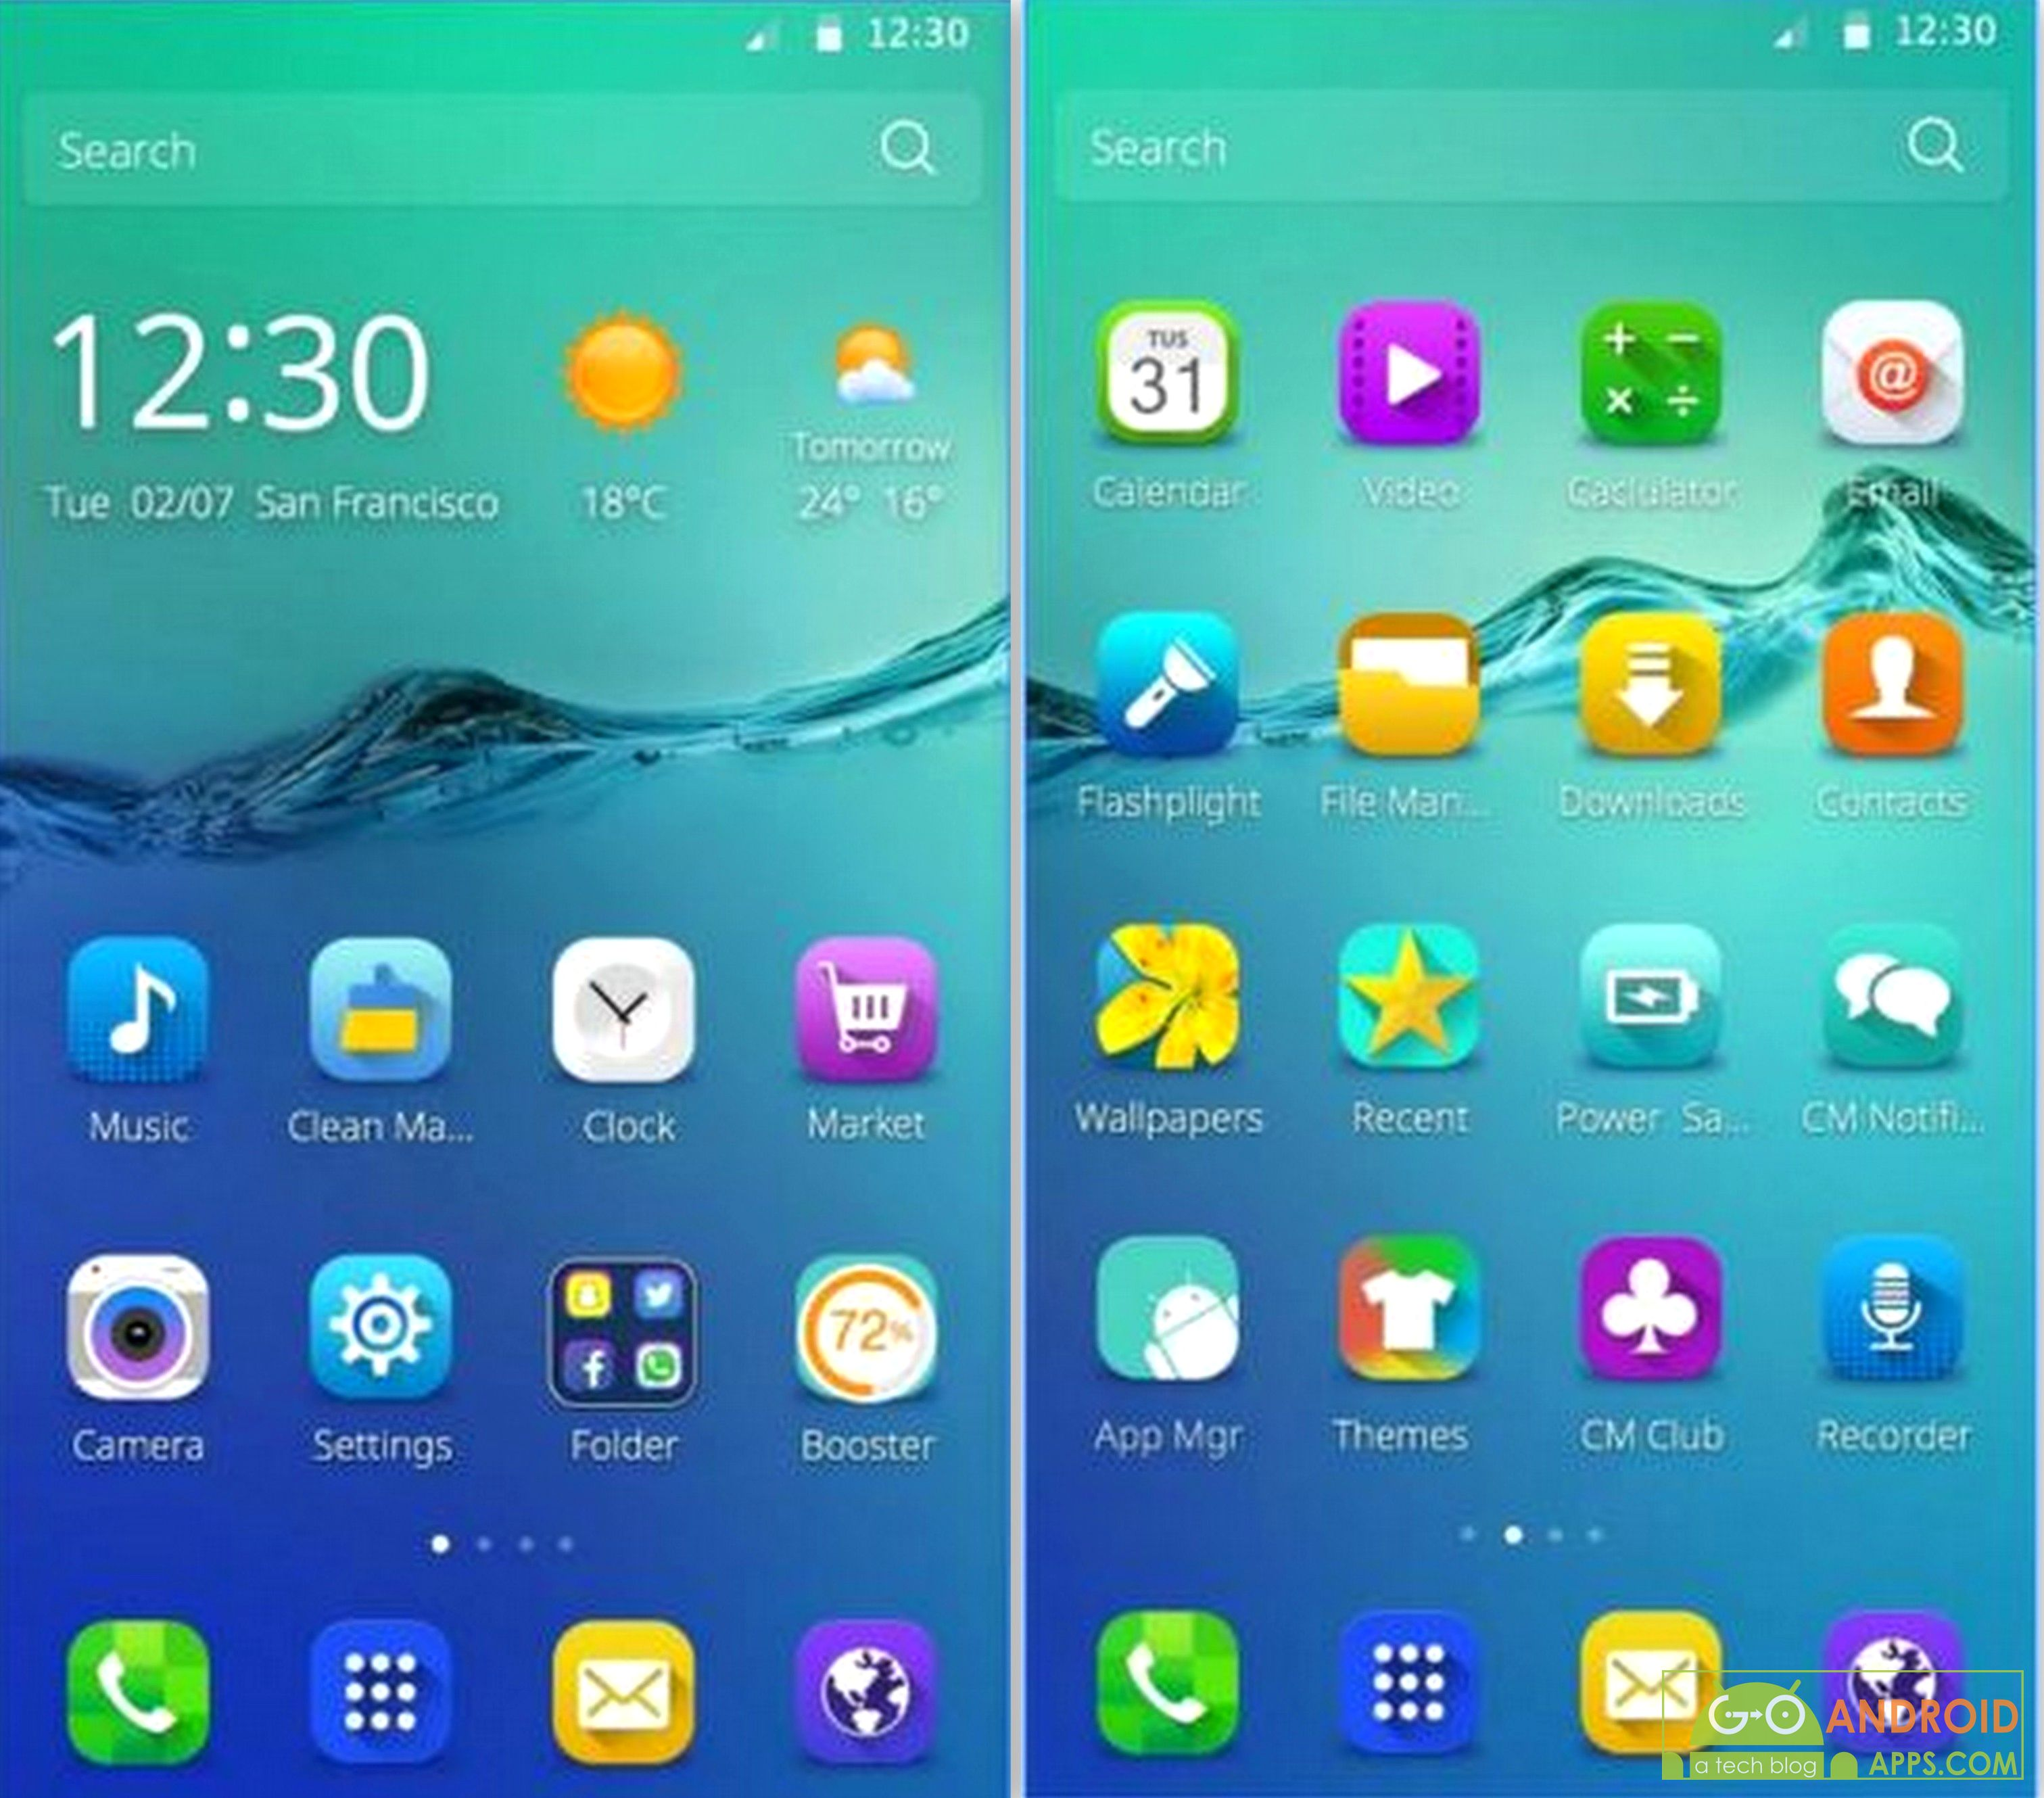 Phone Top Themes For Android Phones 10 best free android themes of 2016 go apps not just create for yourself but also share your beautiful with everyone else personalise phone like never before